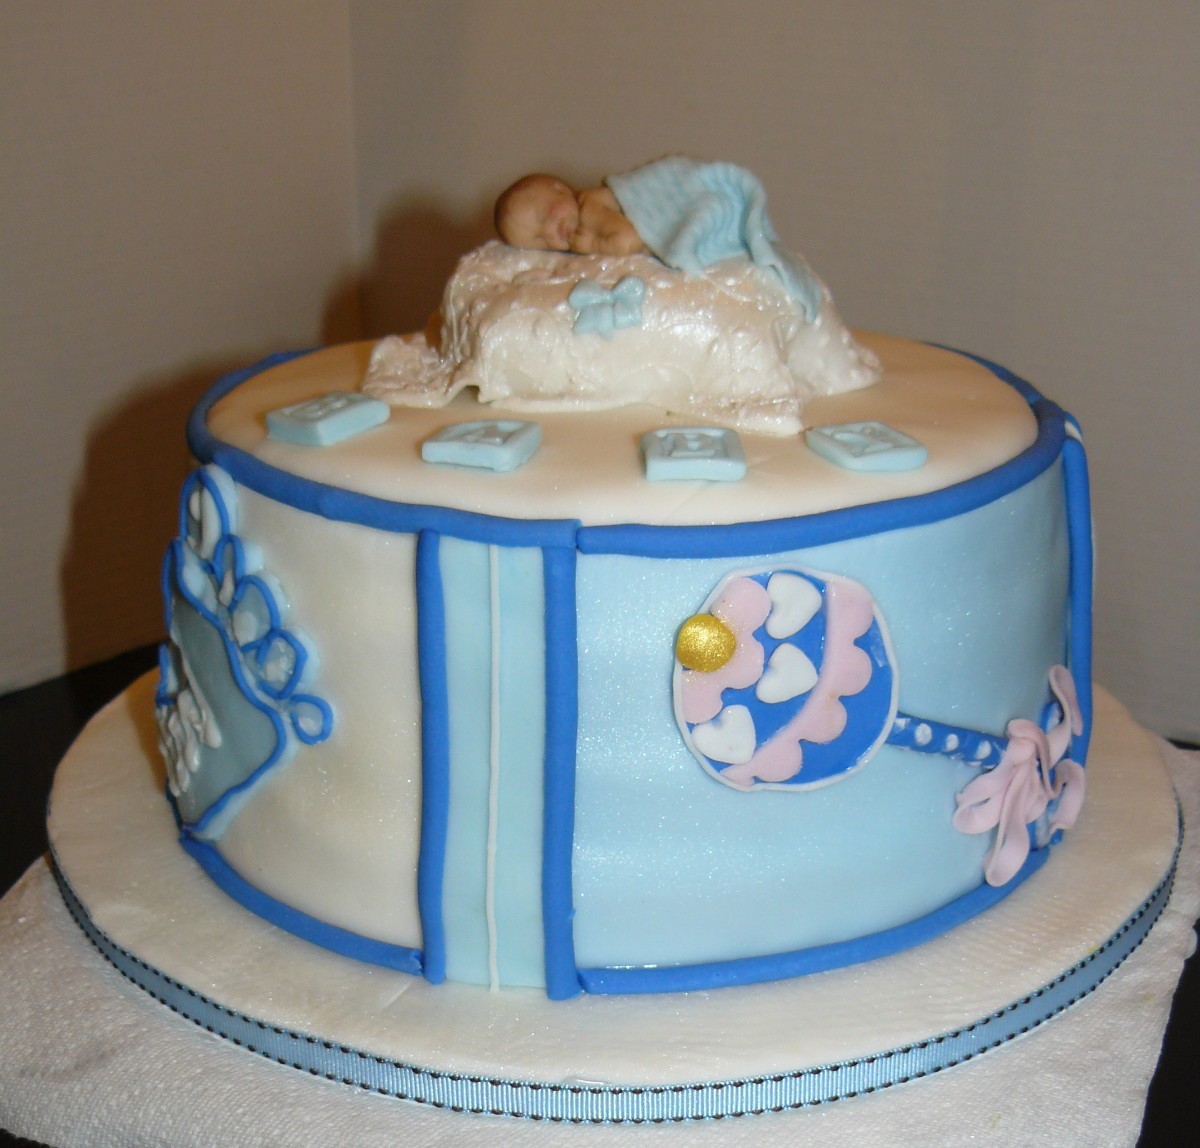 Cake Designs For Baby : 10 Gorgeous Cake Designs For Baby Shower CAKE DESIGN AND ...